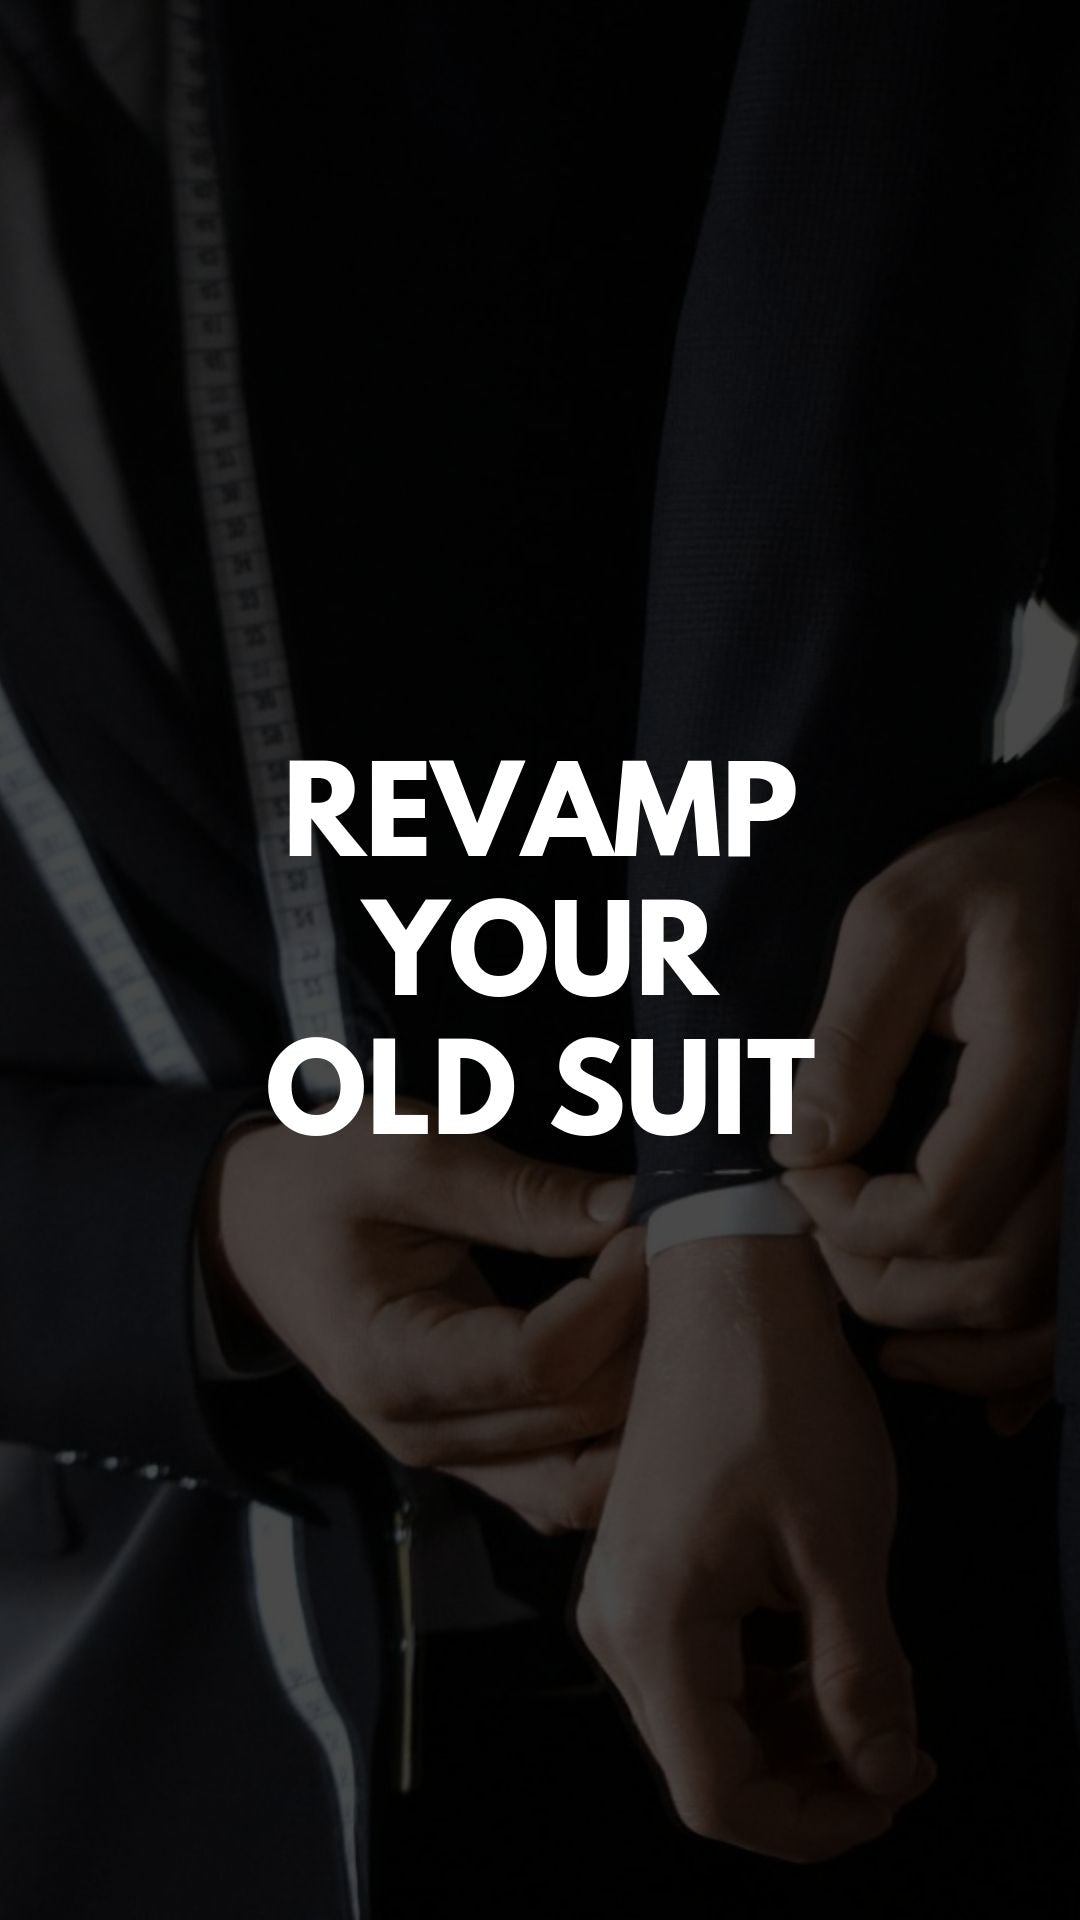 Revamp Your Old Suit